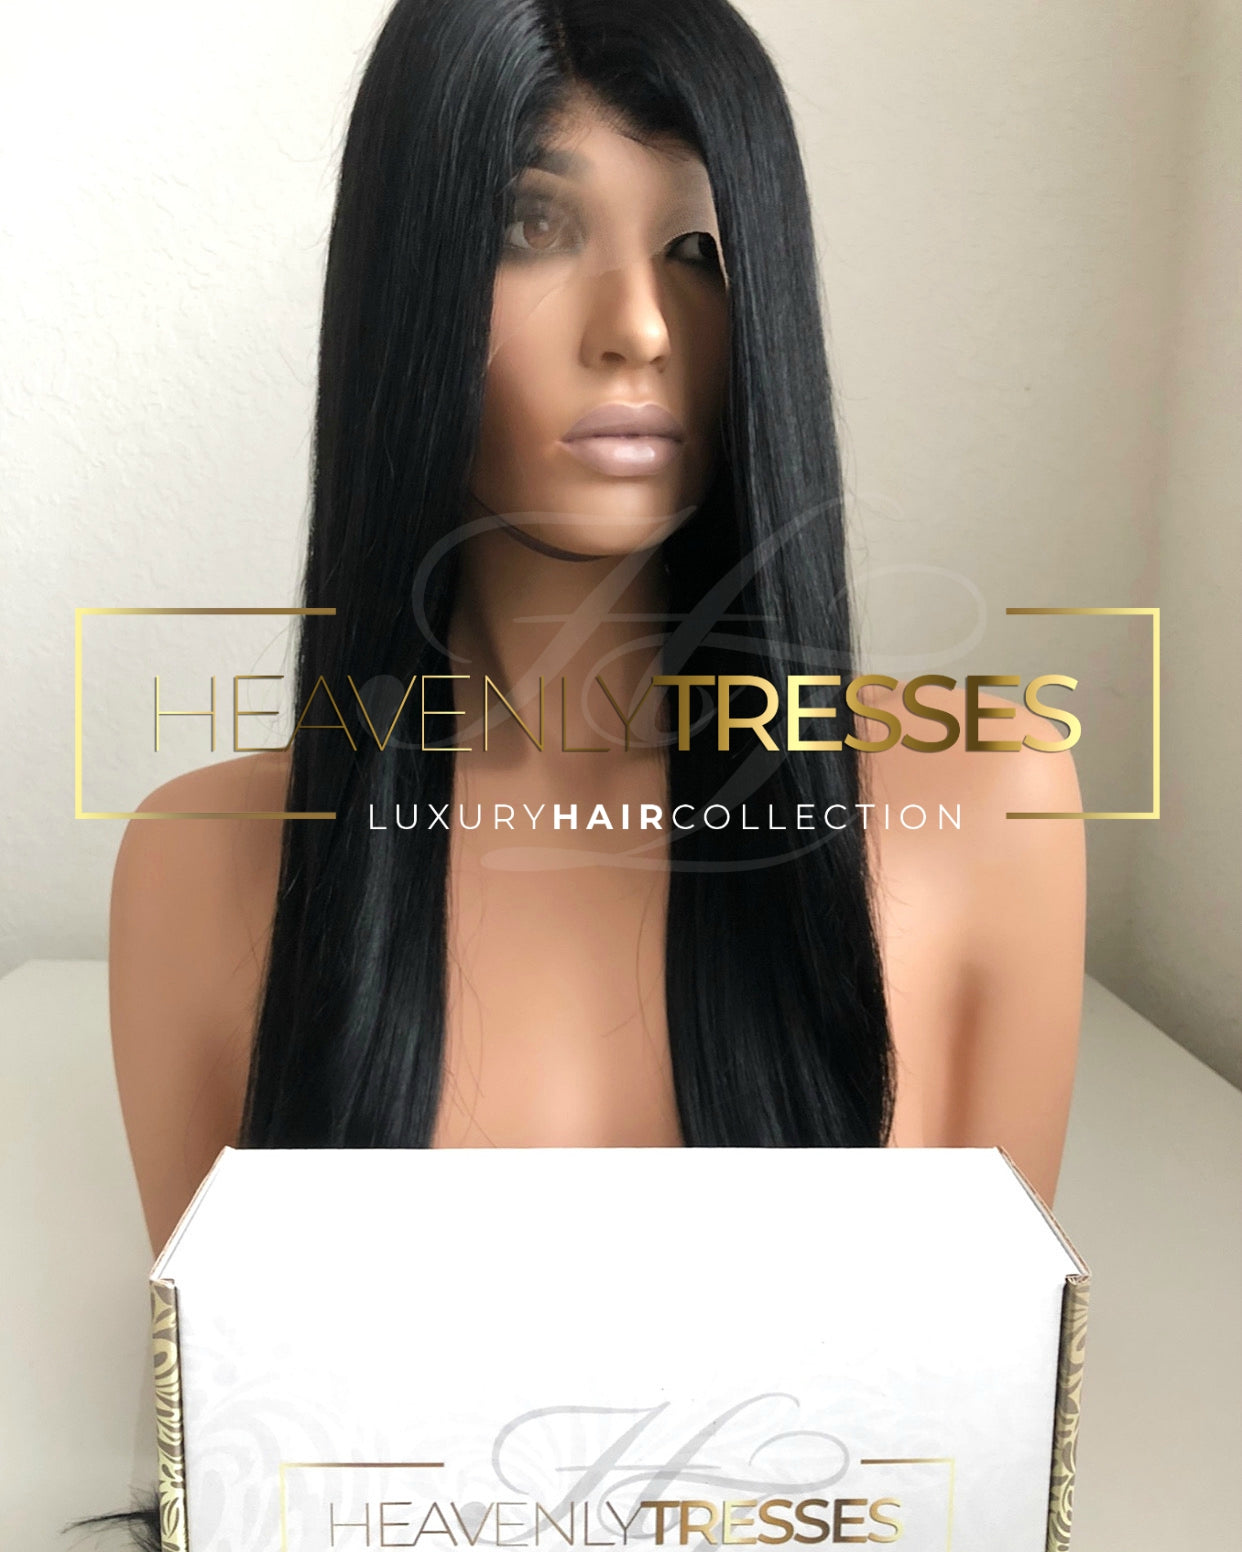 Jet black #1 Virgin Silky Straight Human Hair Lace Wig